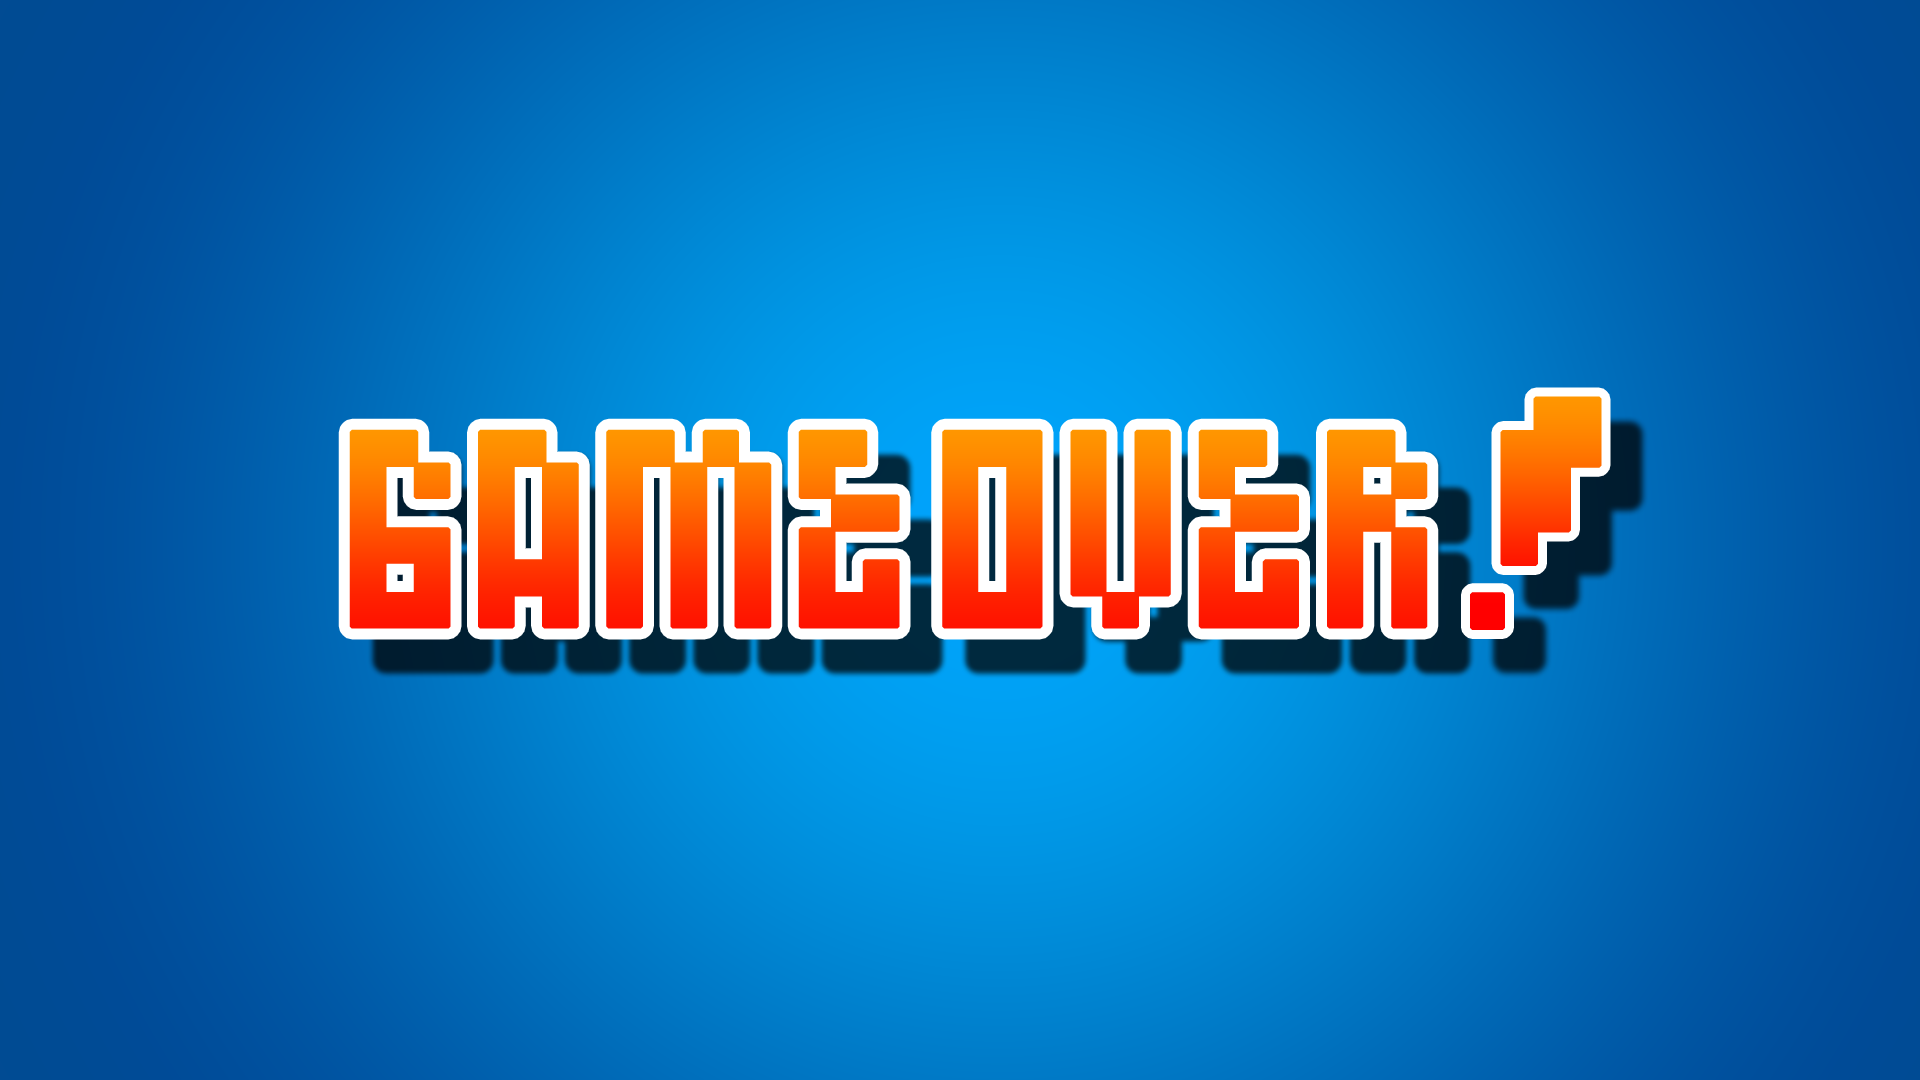 Game Over HD Games 4k Wallpapers Images Backgrounds Photos And